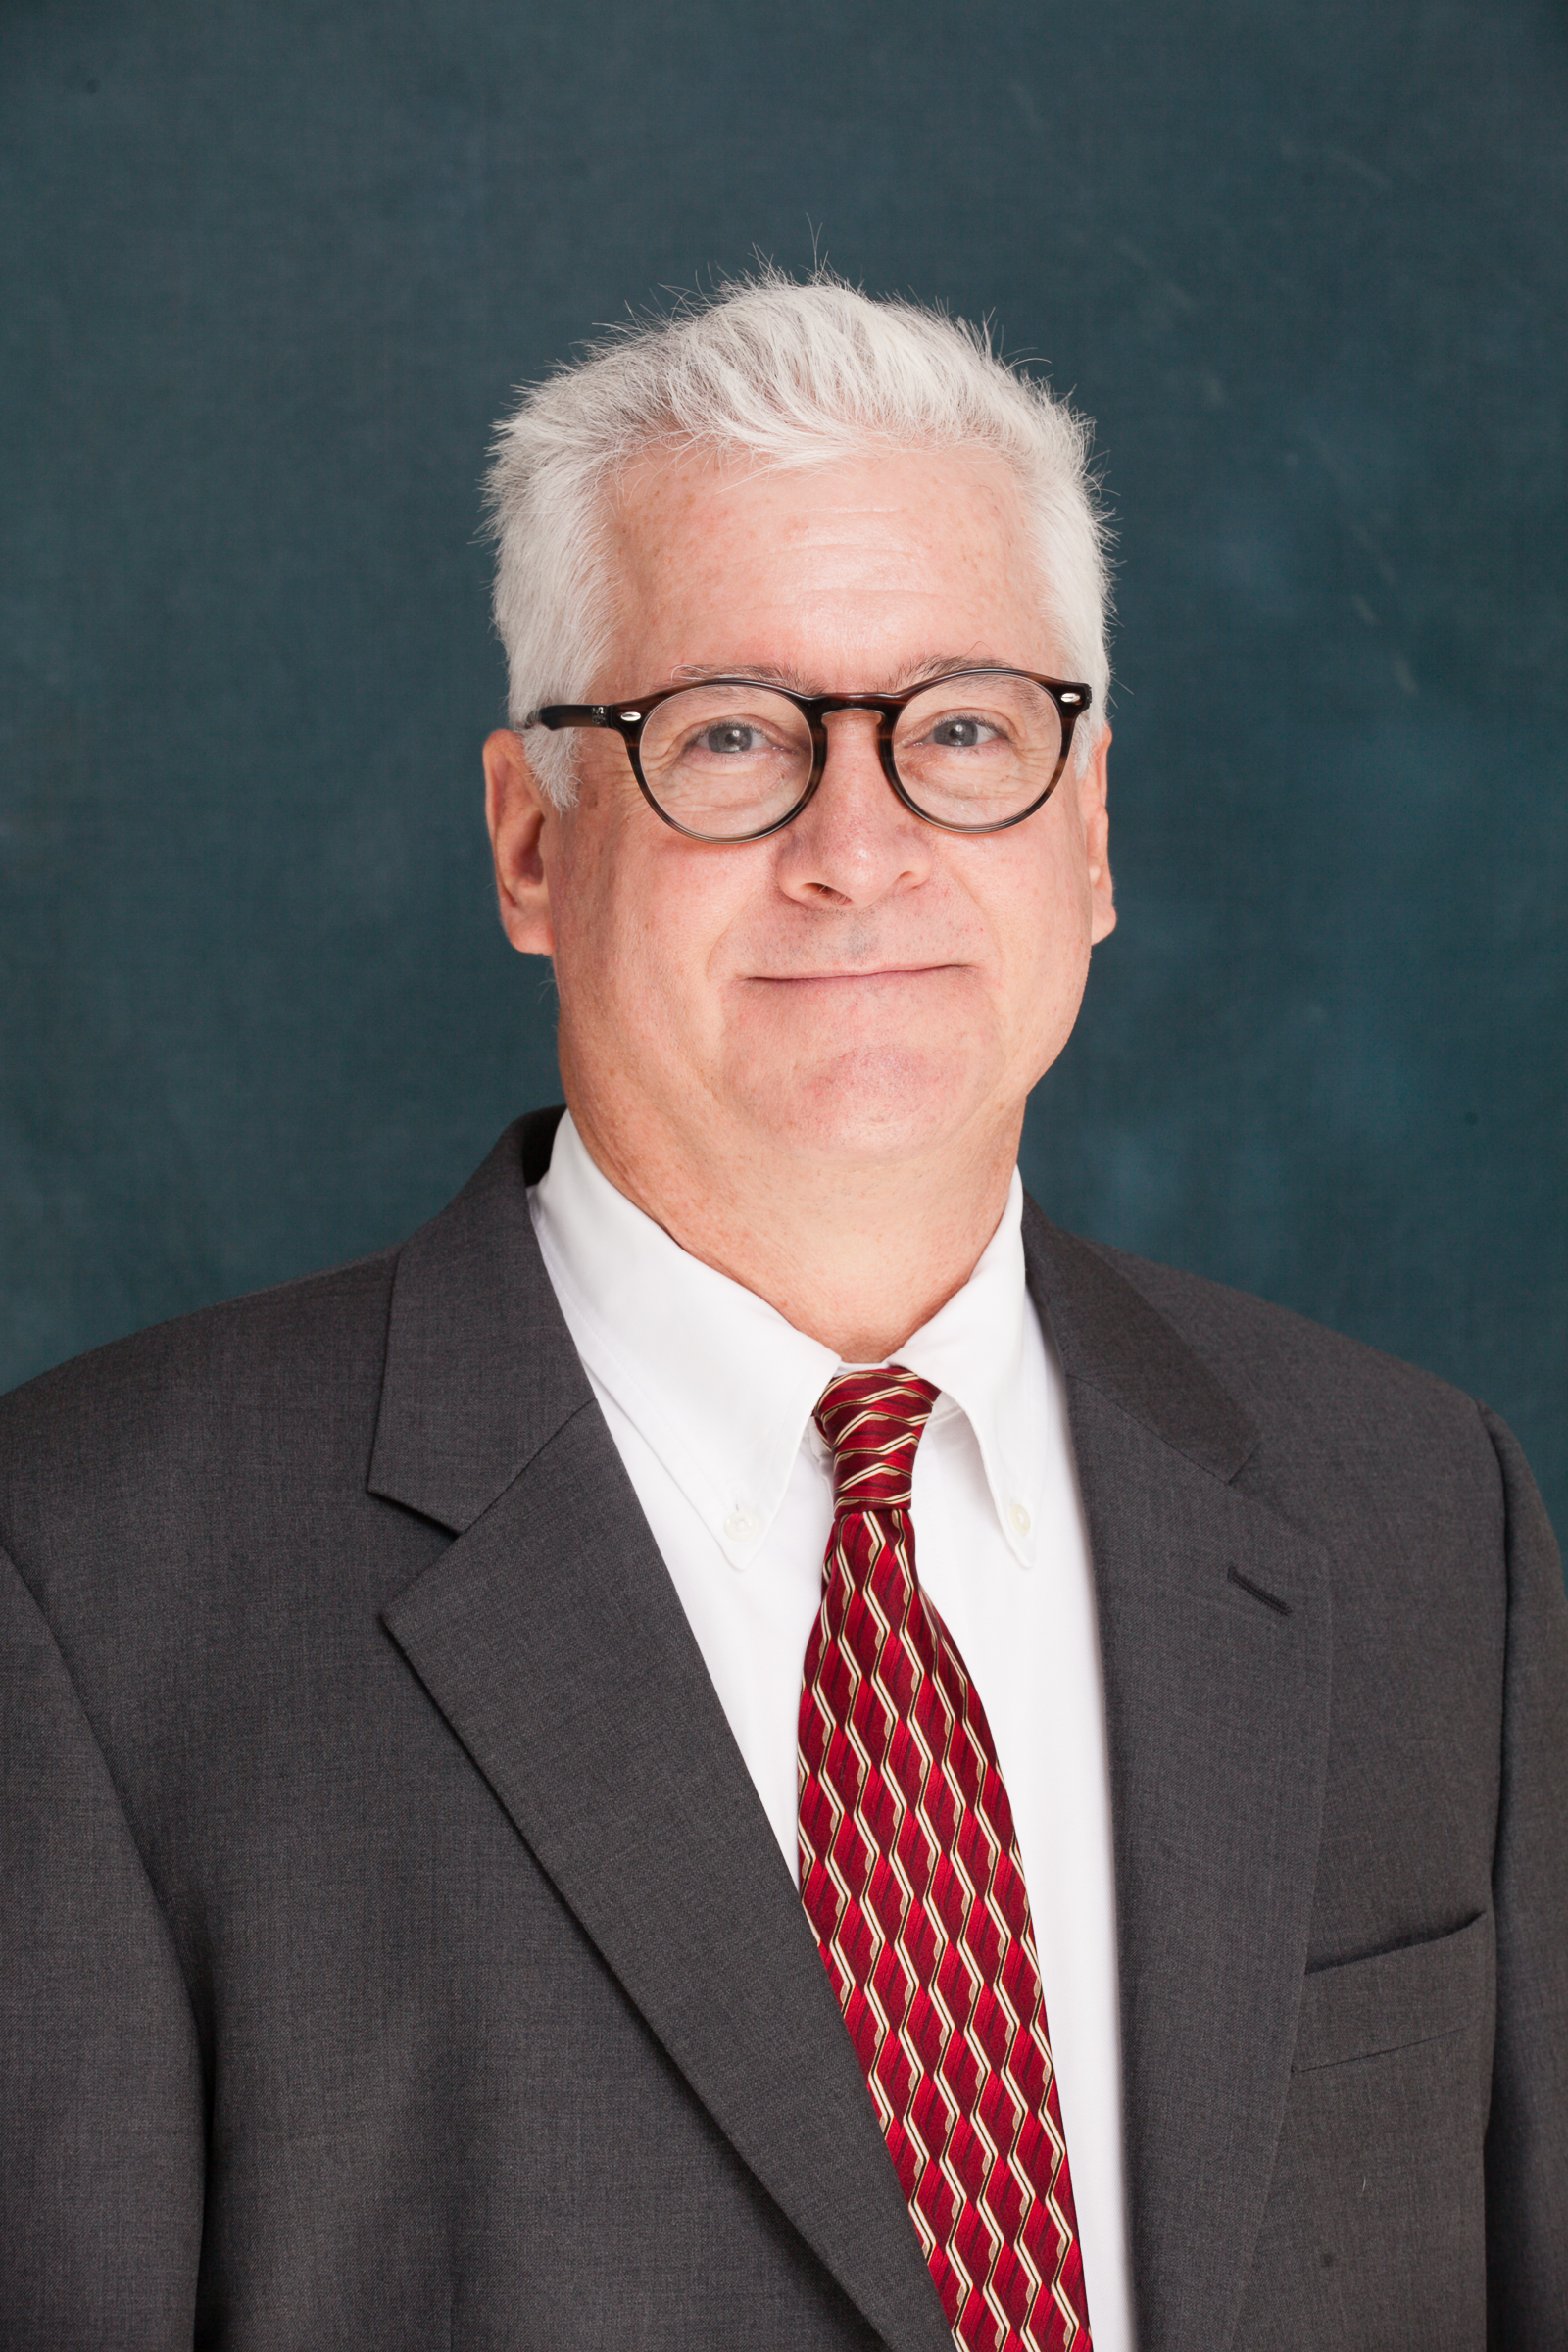 photo of attorney James B. Snow III